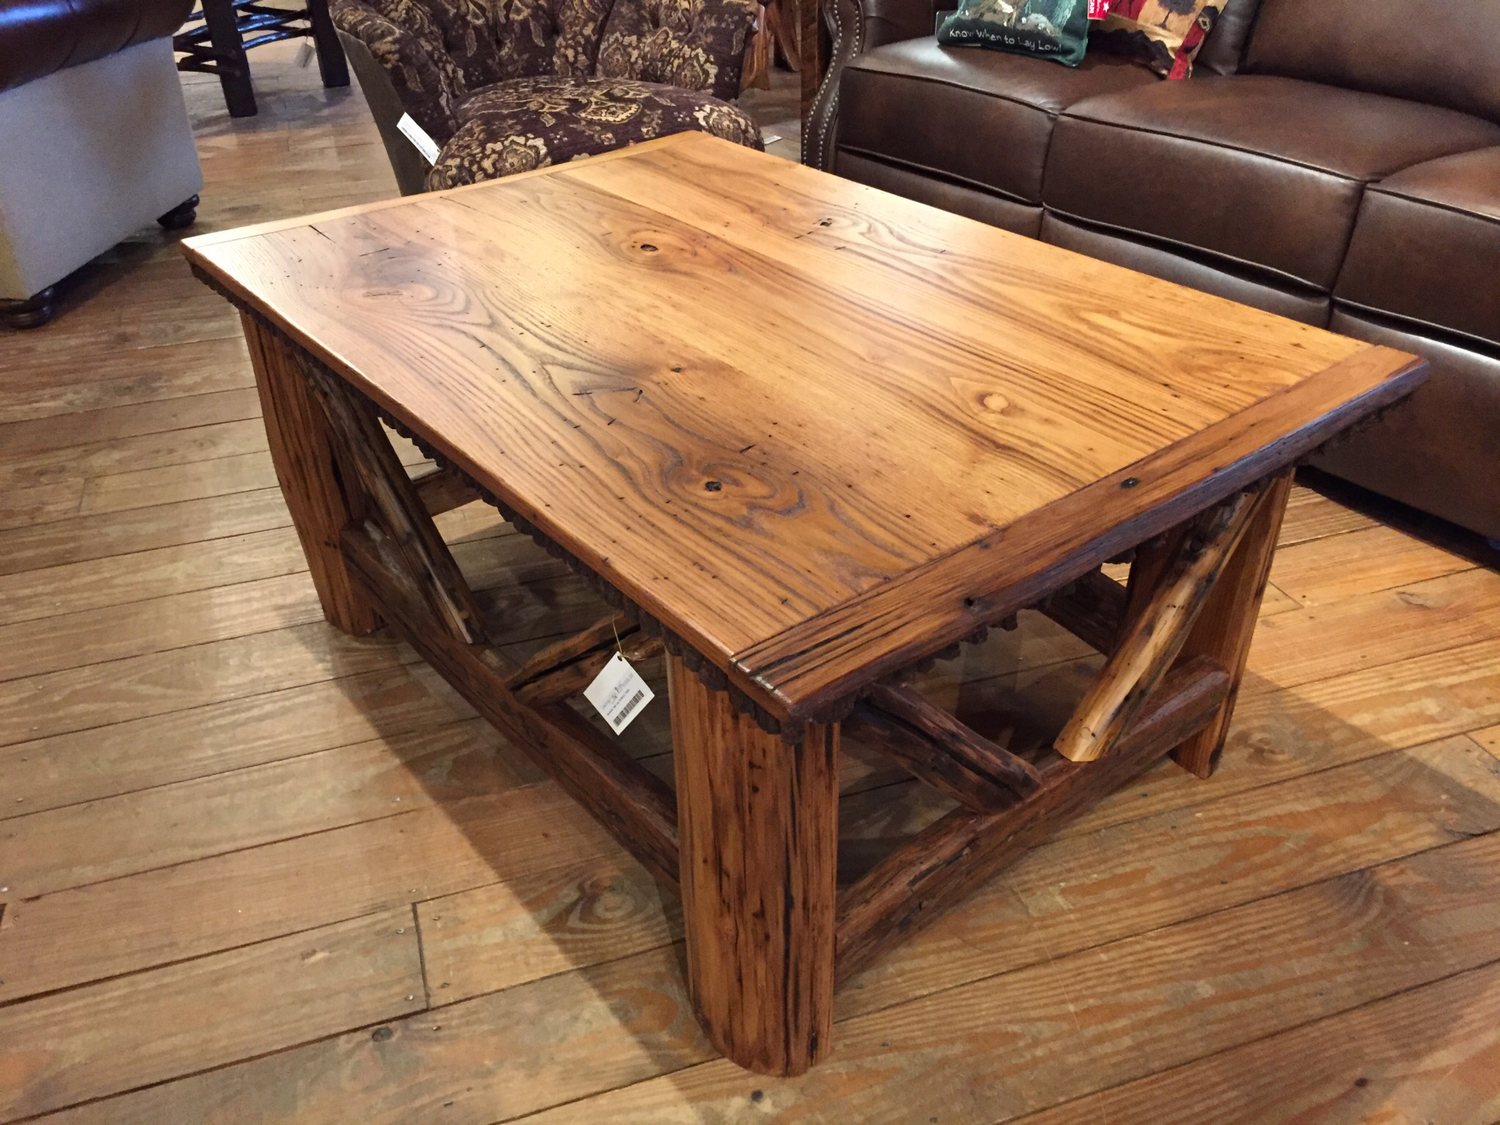 Chestnut and Log Cocktail Table